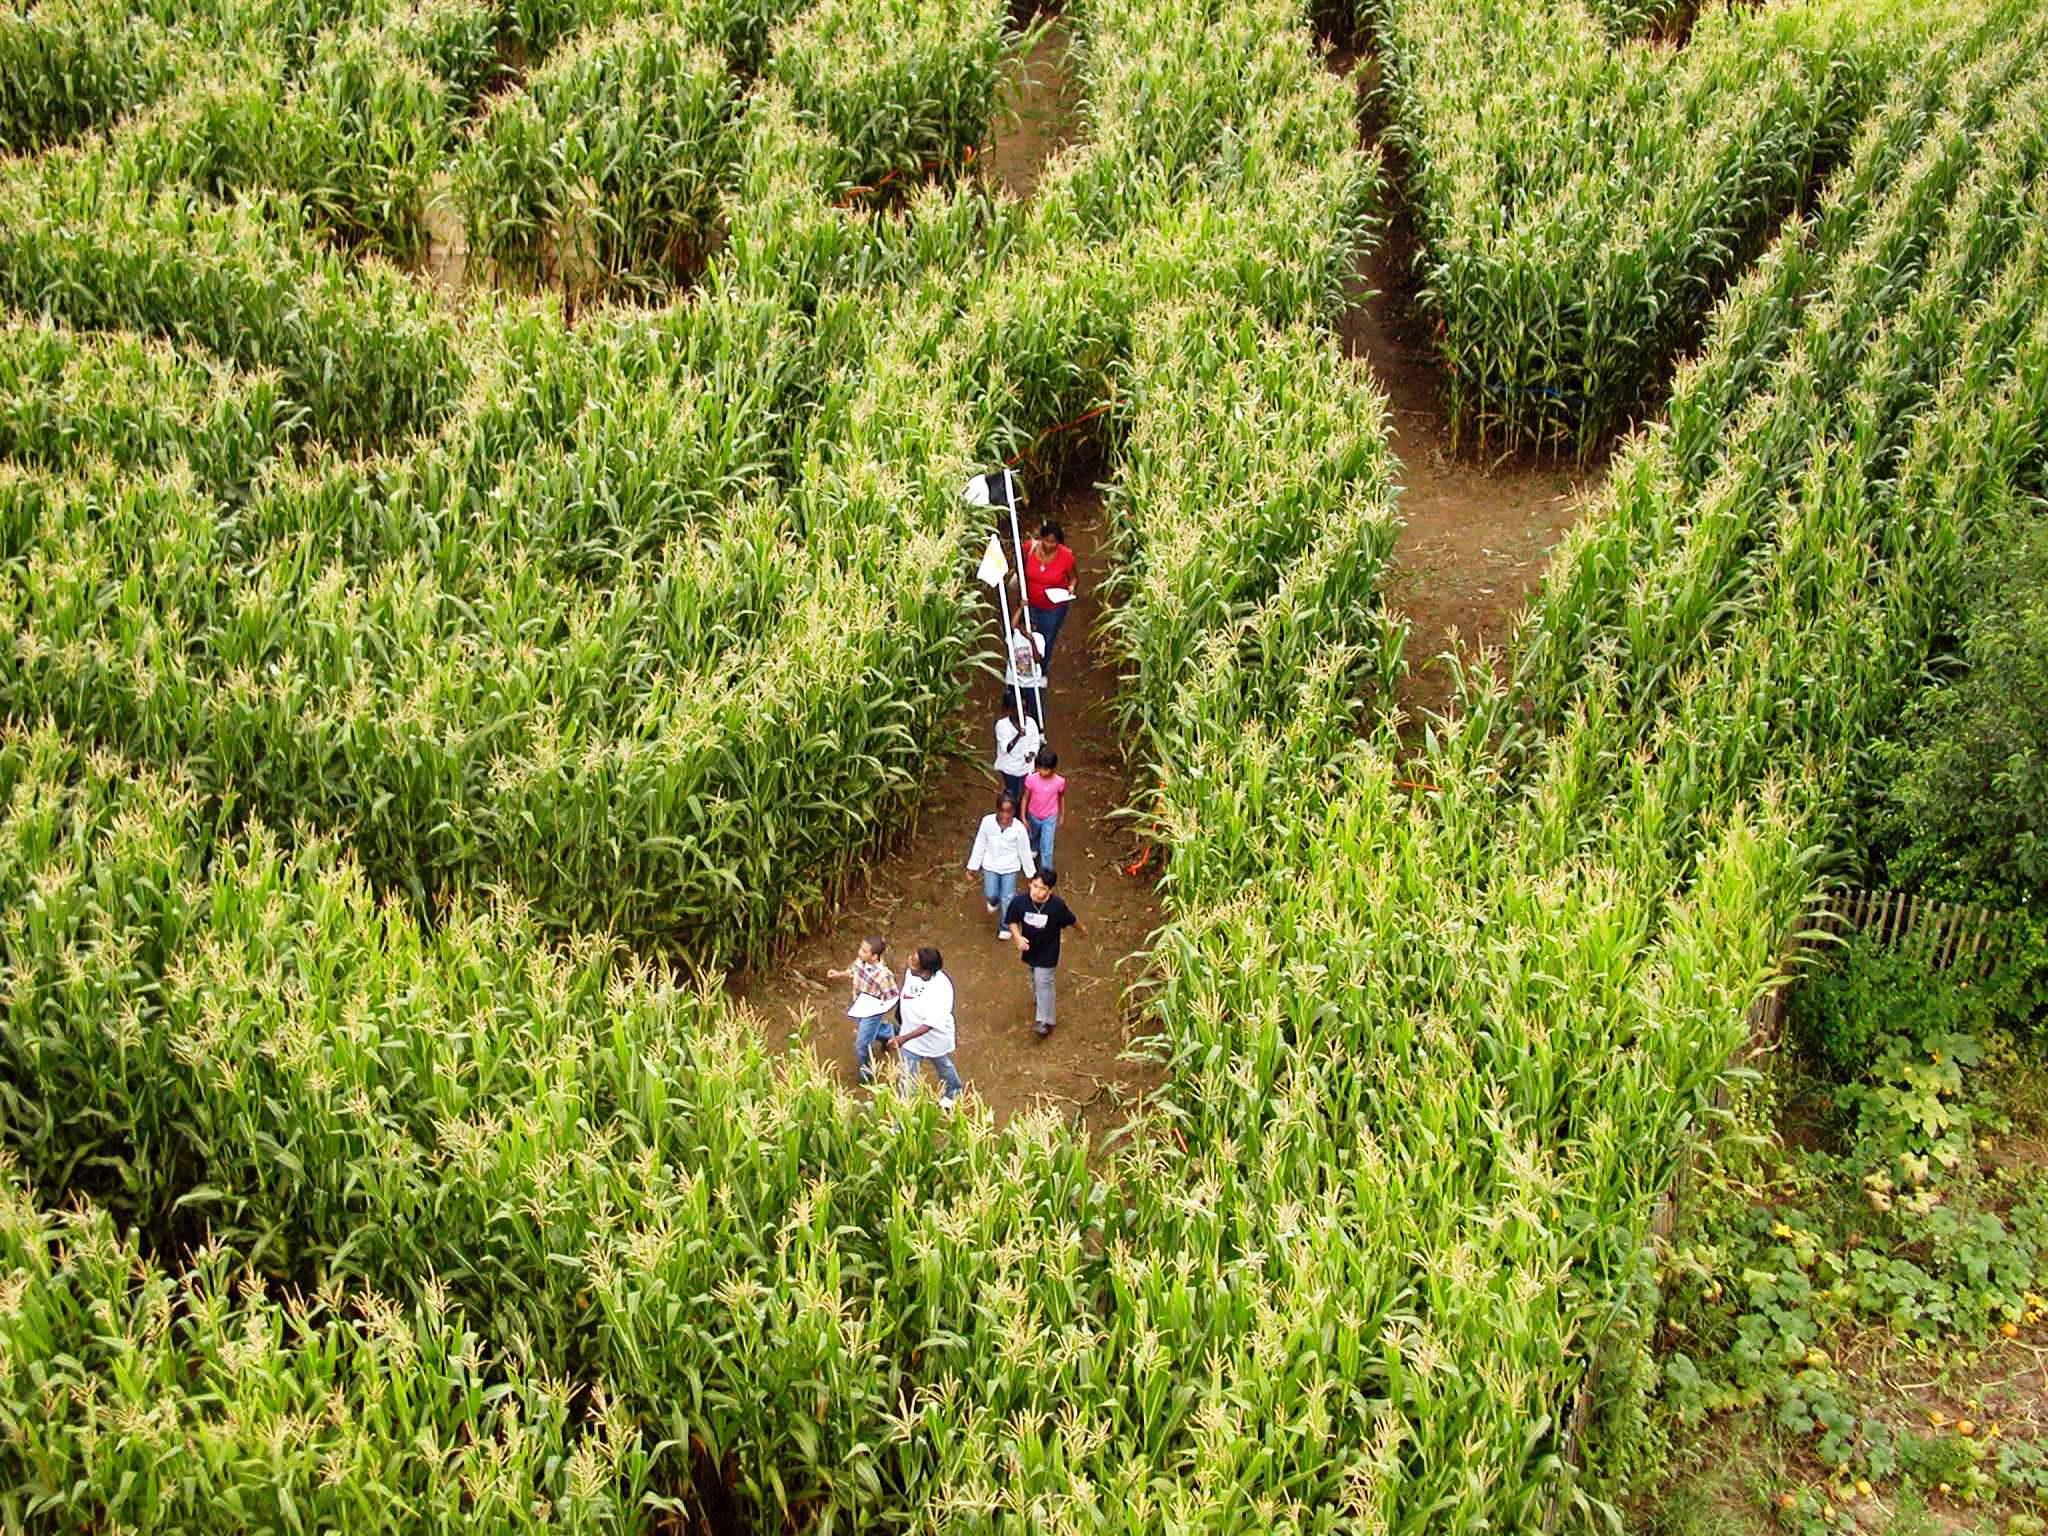 The Amazing Maize Maze at Queens County Farm Museum